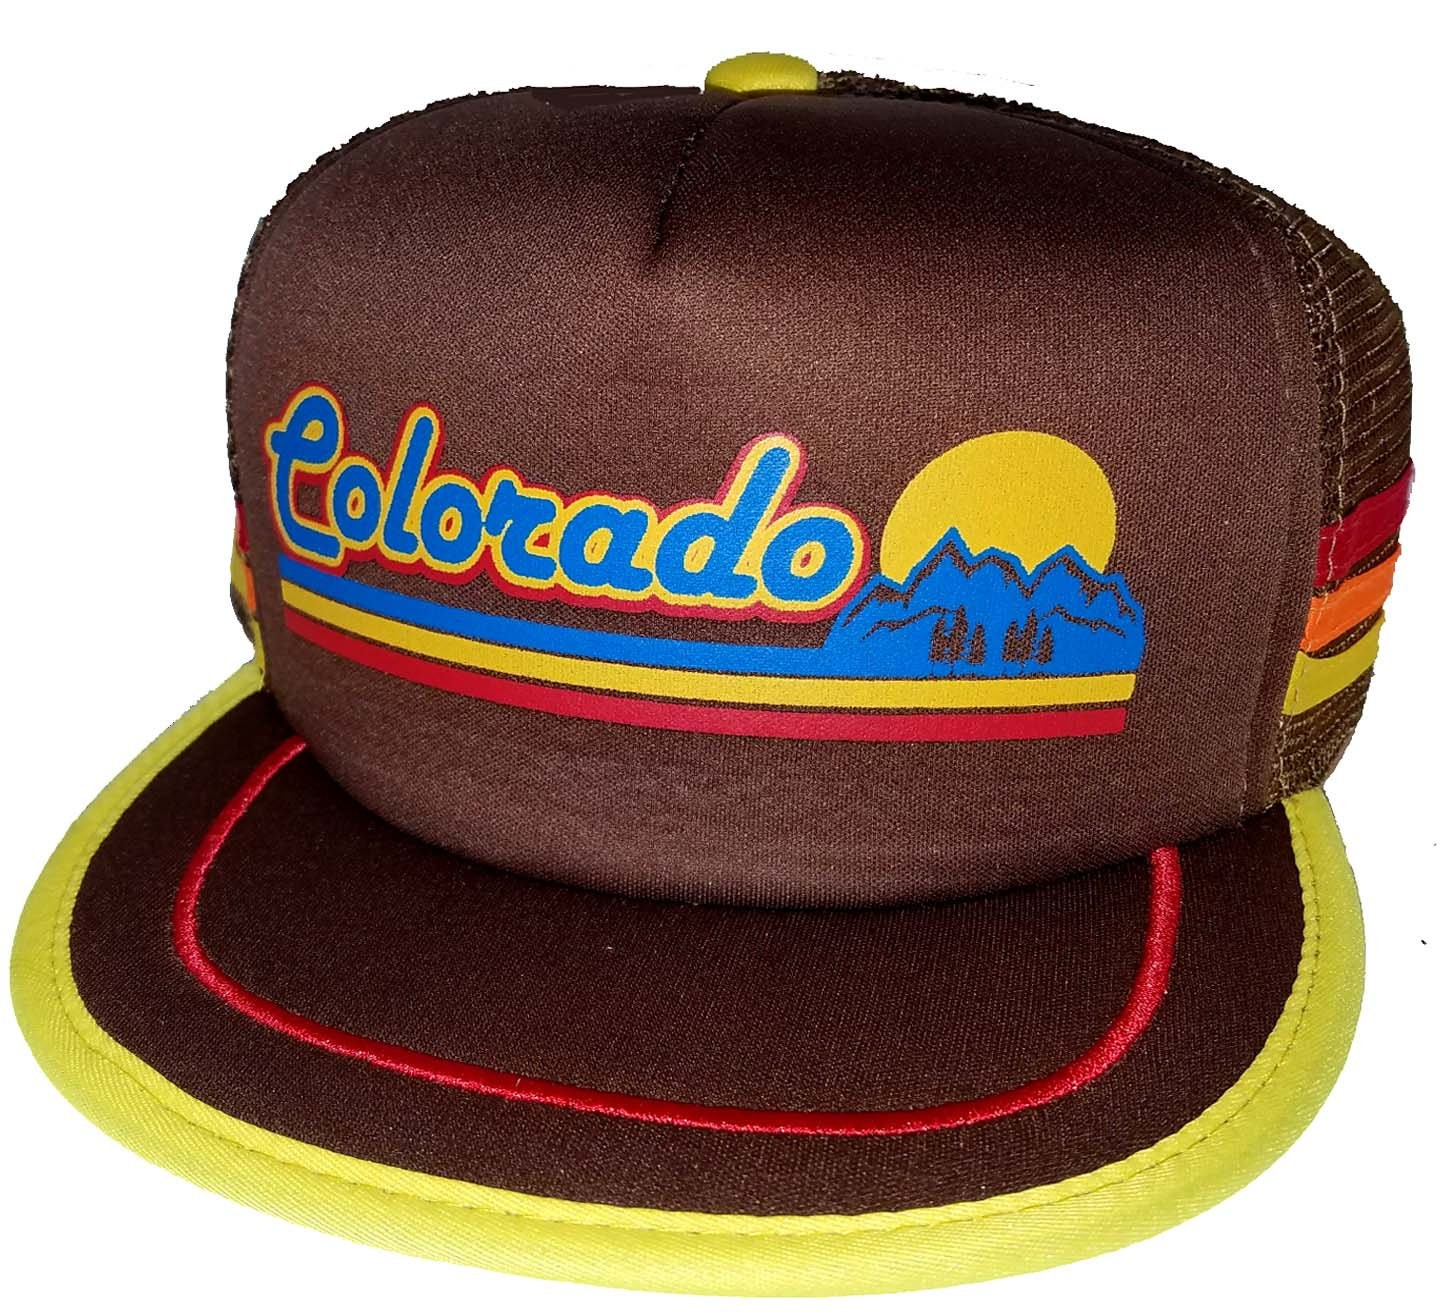 04ad23c6c5ec7 Colorado Mountain Sunset Brown 3 Striped Snapback Mesh Trucker Hat Cap